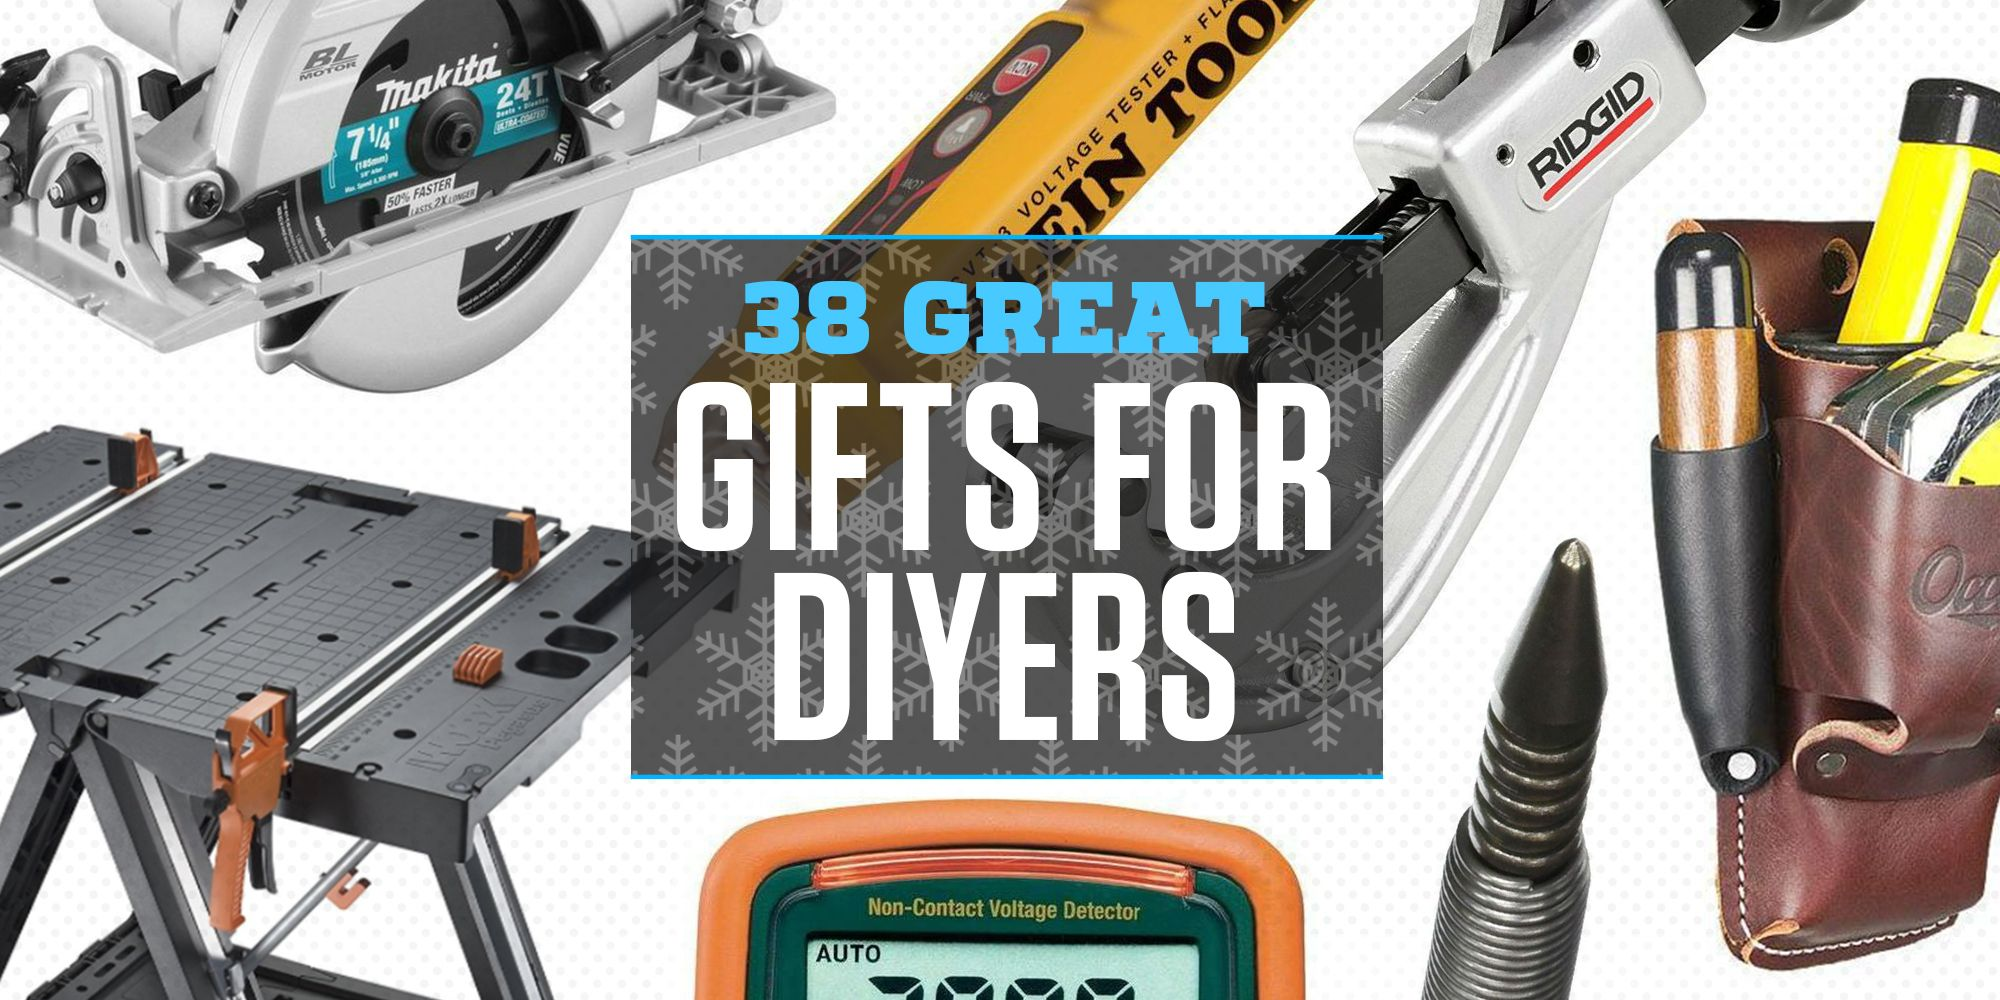 gifts for mechanics | gifts for diy dads 2018